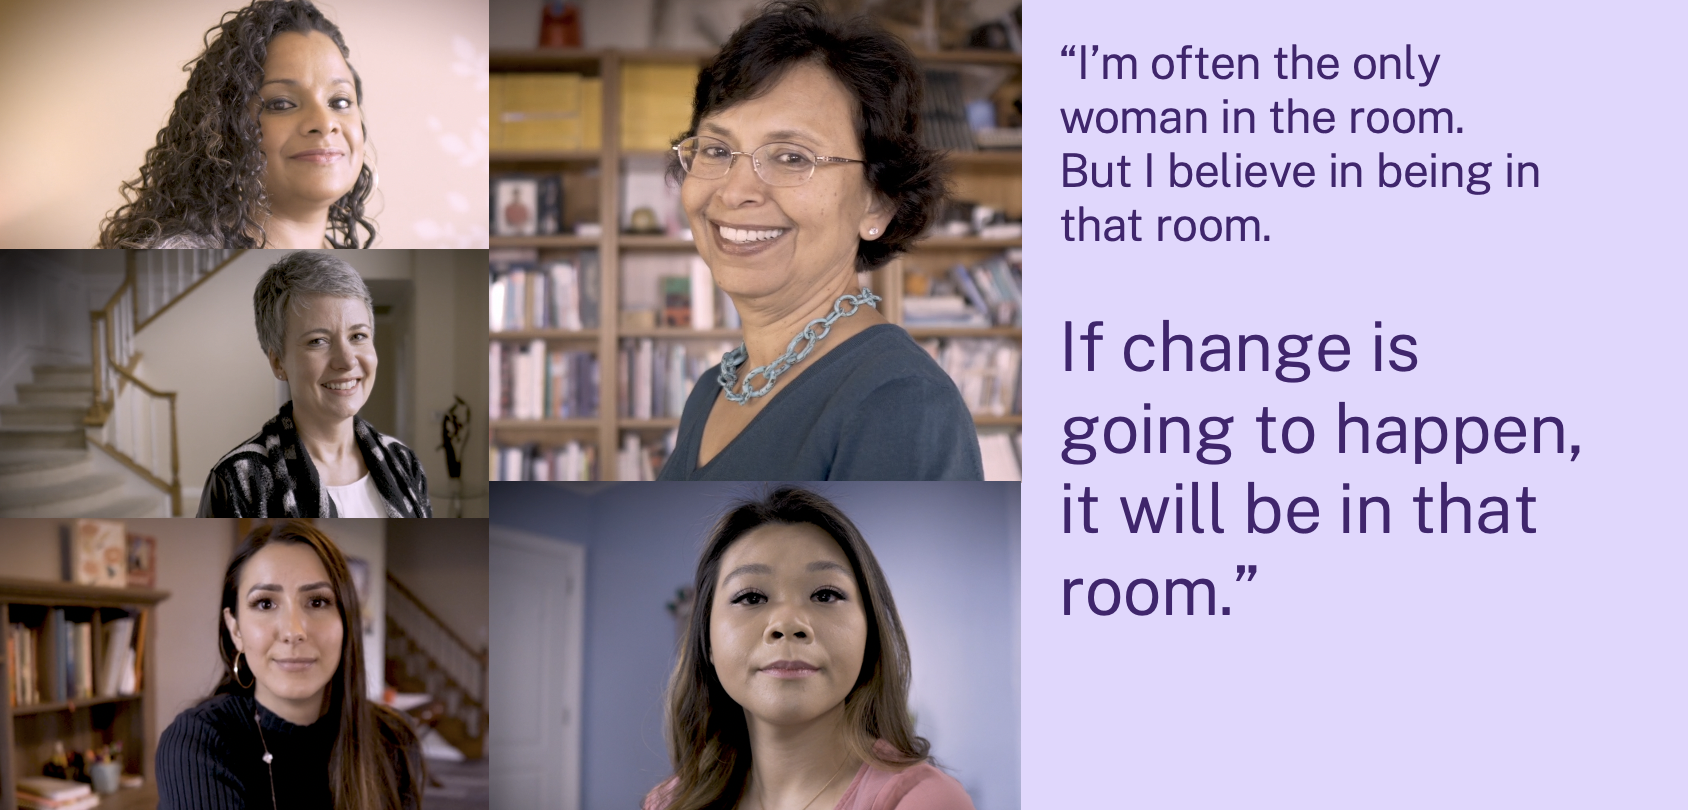 """""""I'm often the only woman in the room. But I believe in being in that room.  If change is going to happen, it will be in that room."""""""